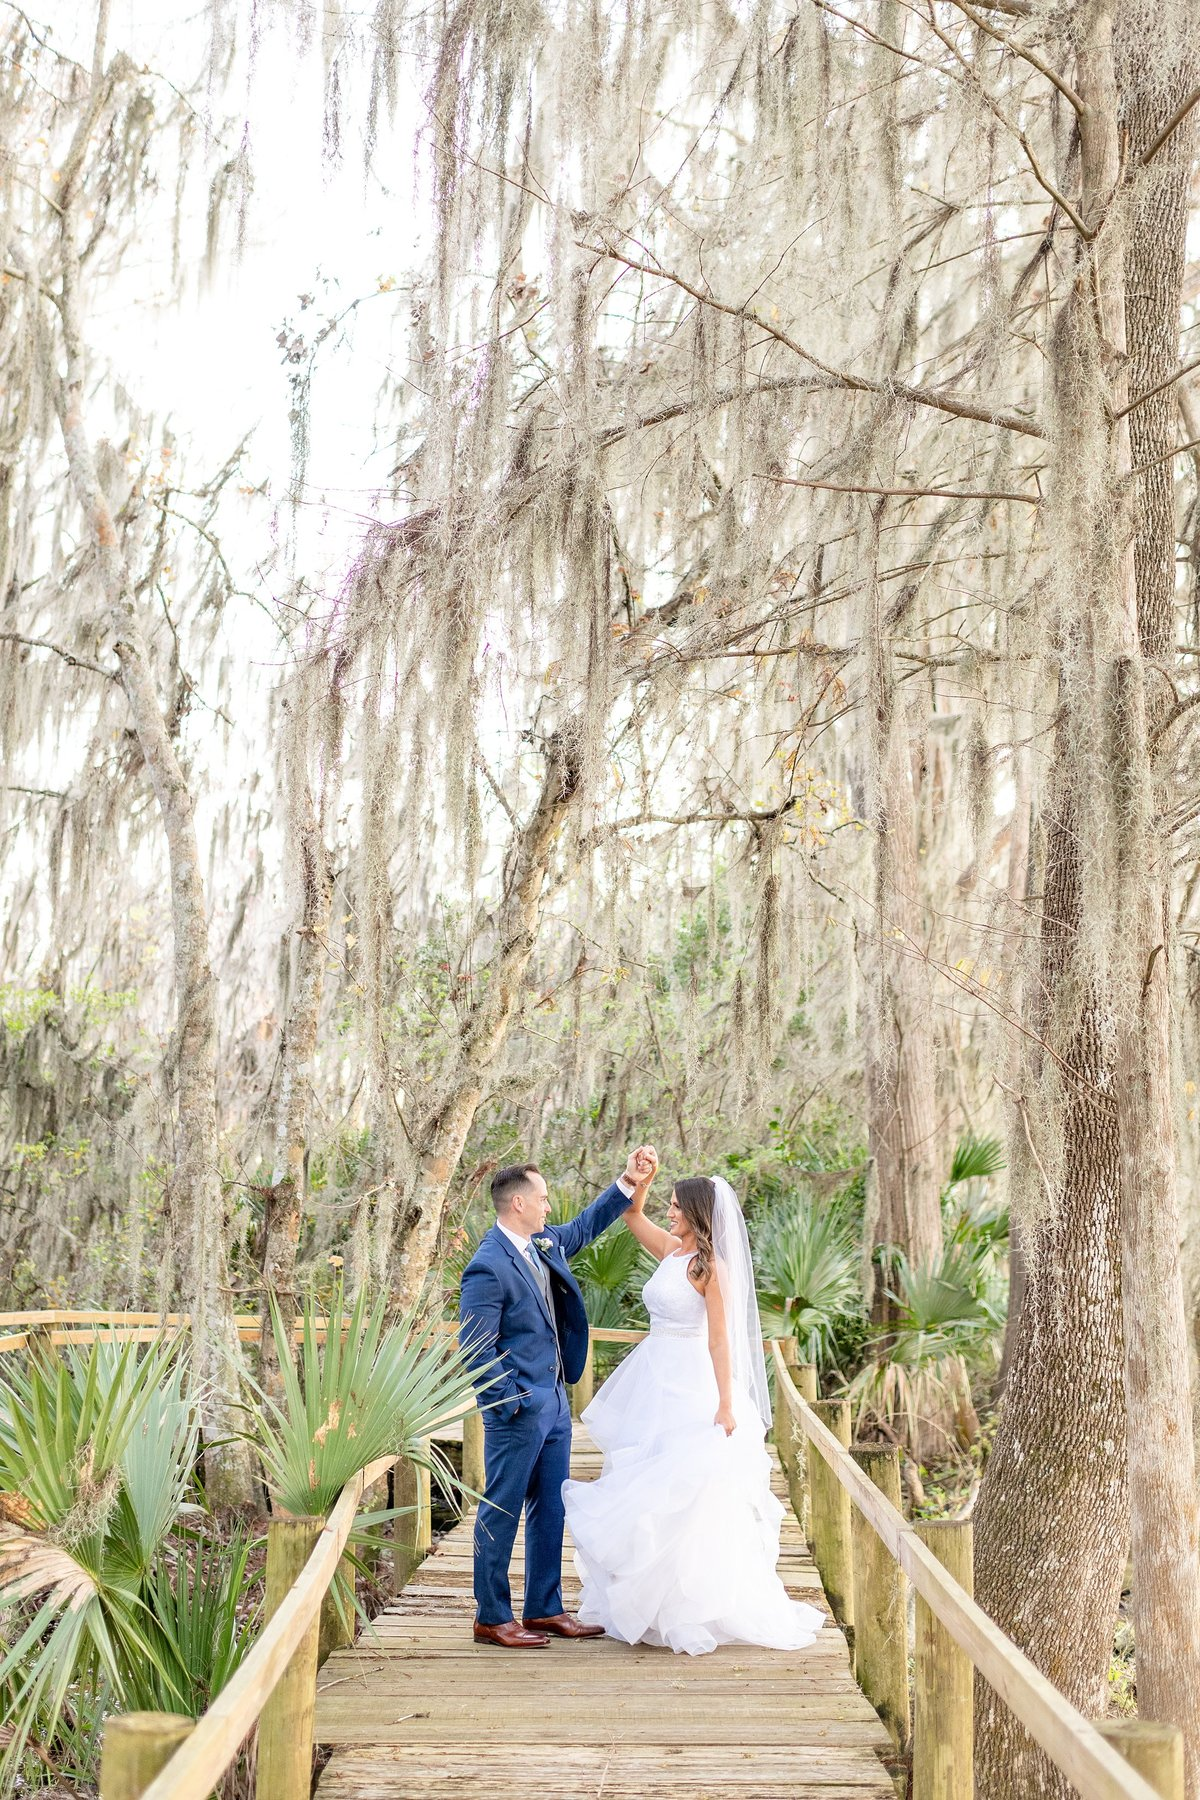 Mission Inn Marina Wedding | Orlando Wedding Photographer